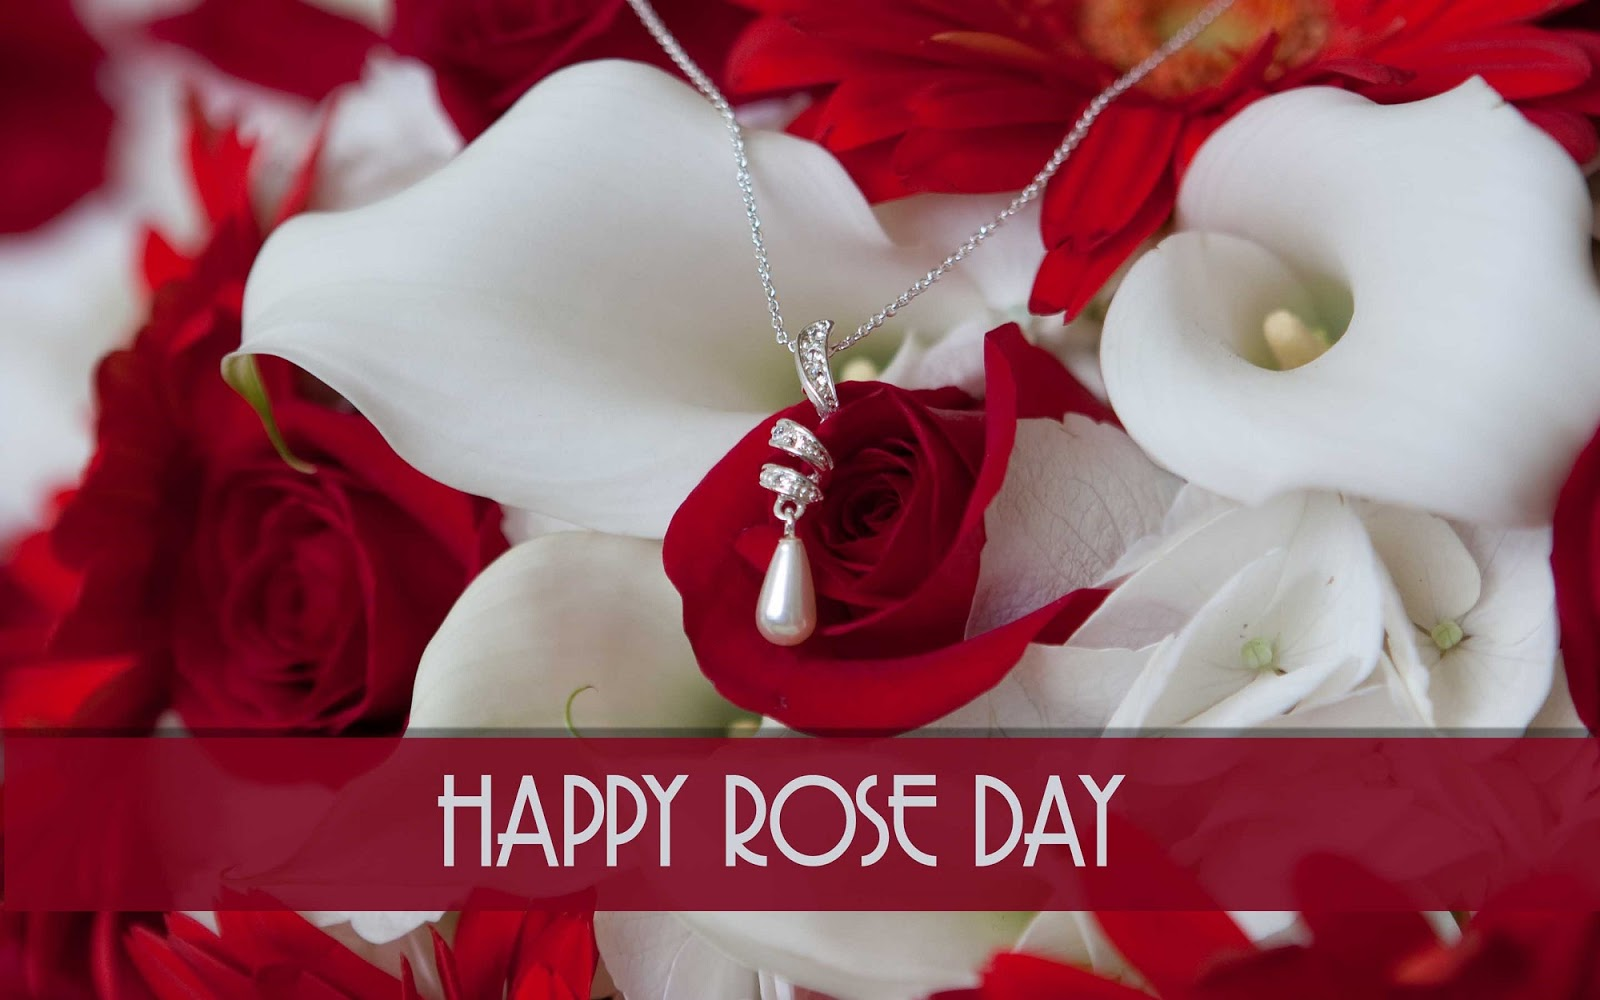 Happy Rose day pretty wallpaper with necklace to your love forever